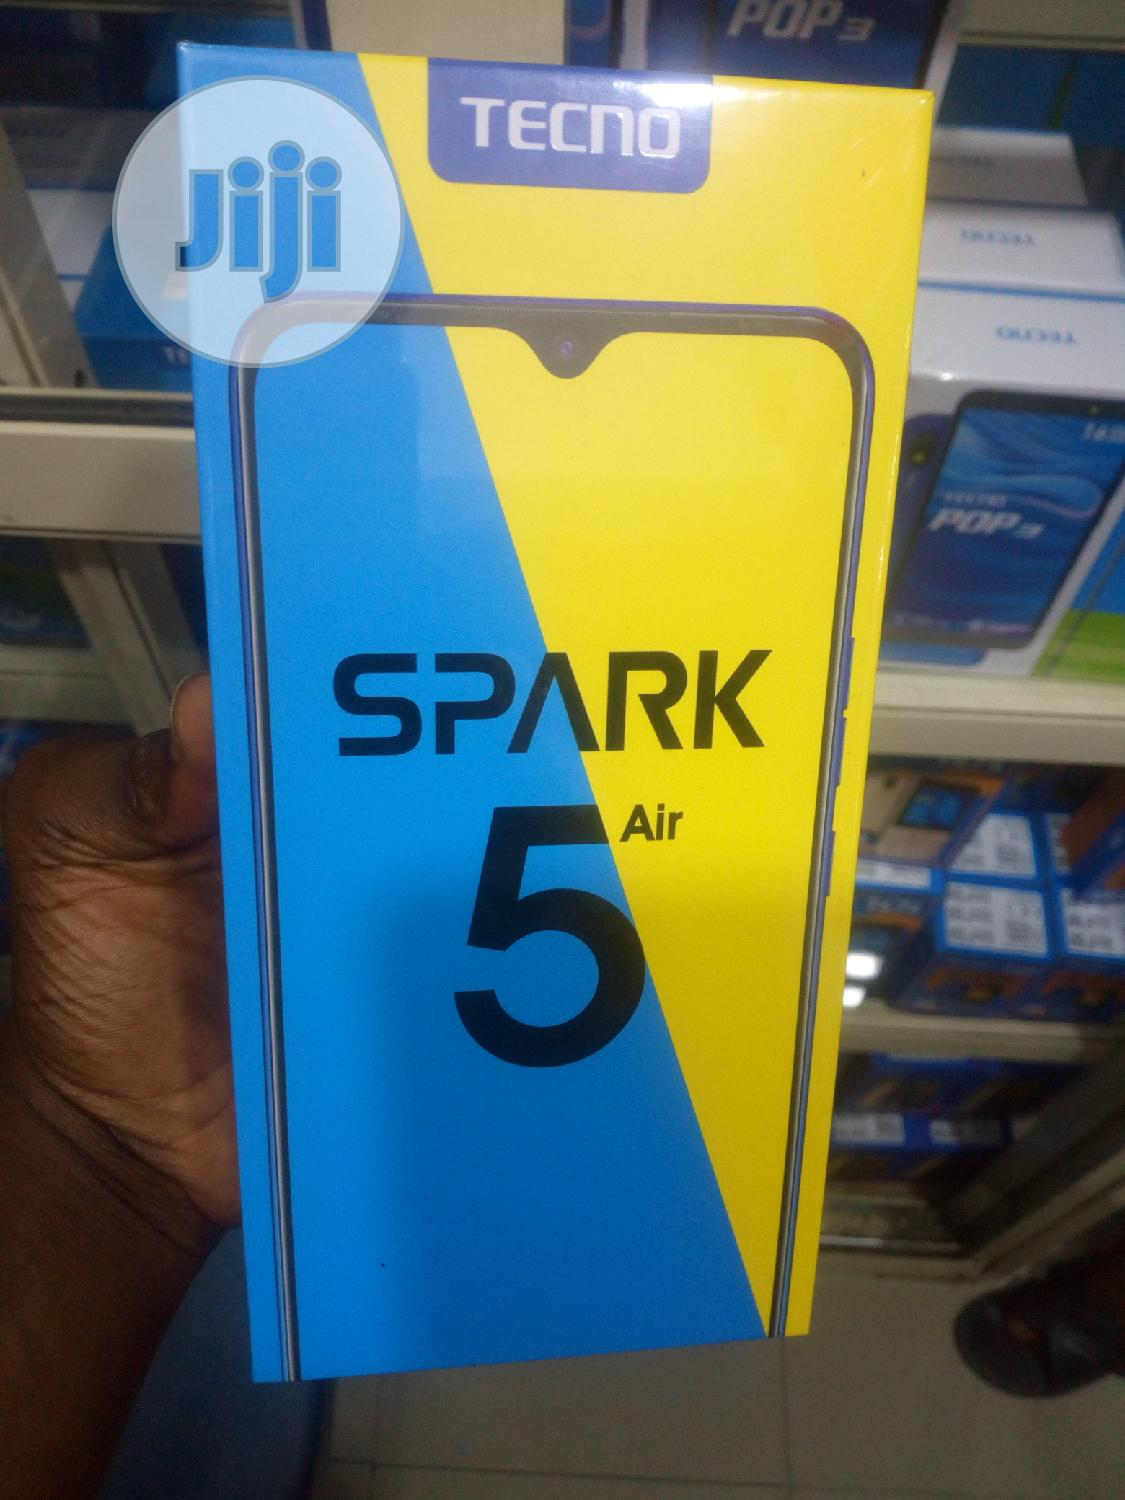 New Tecno Spark 5 Air 32 GB